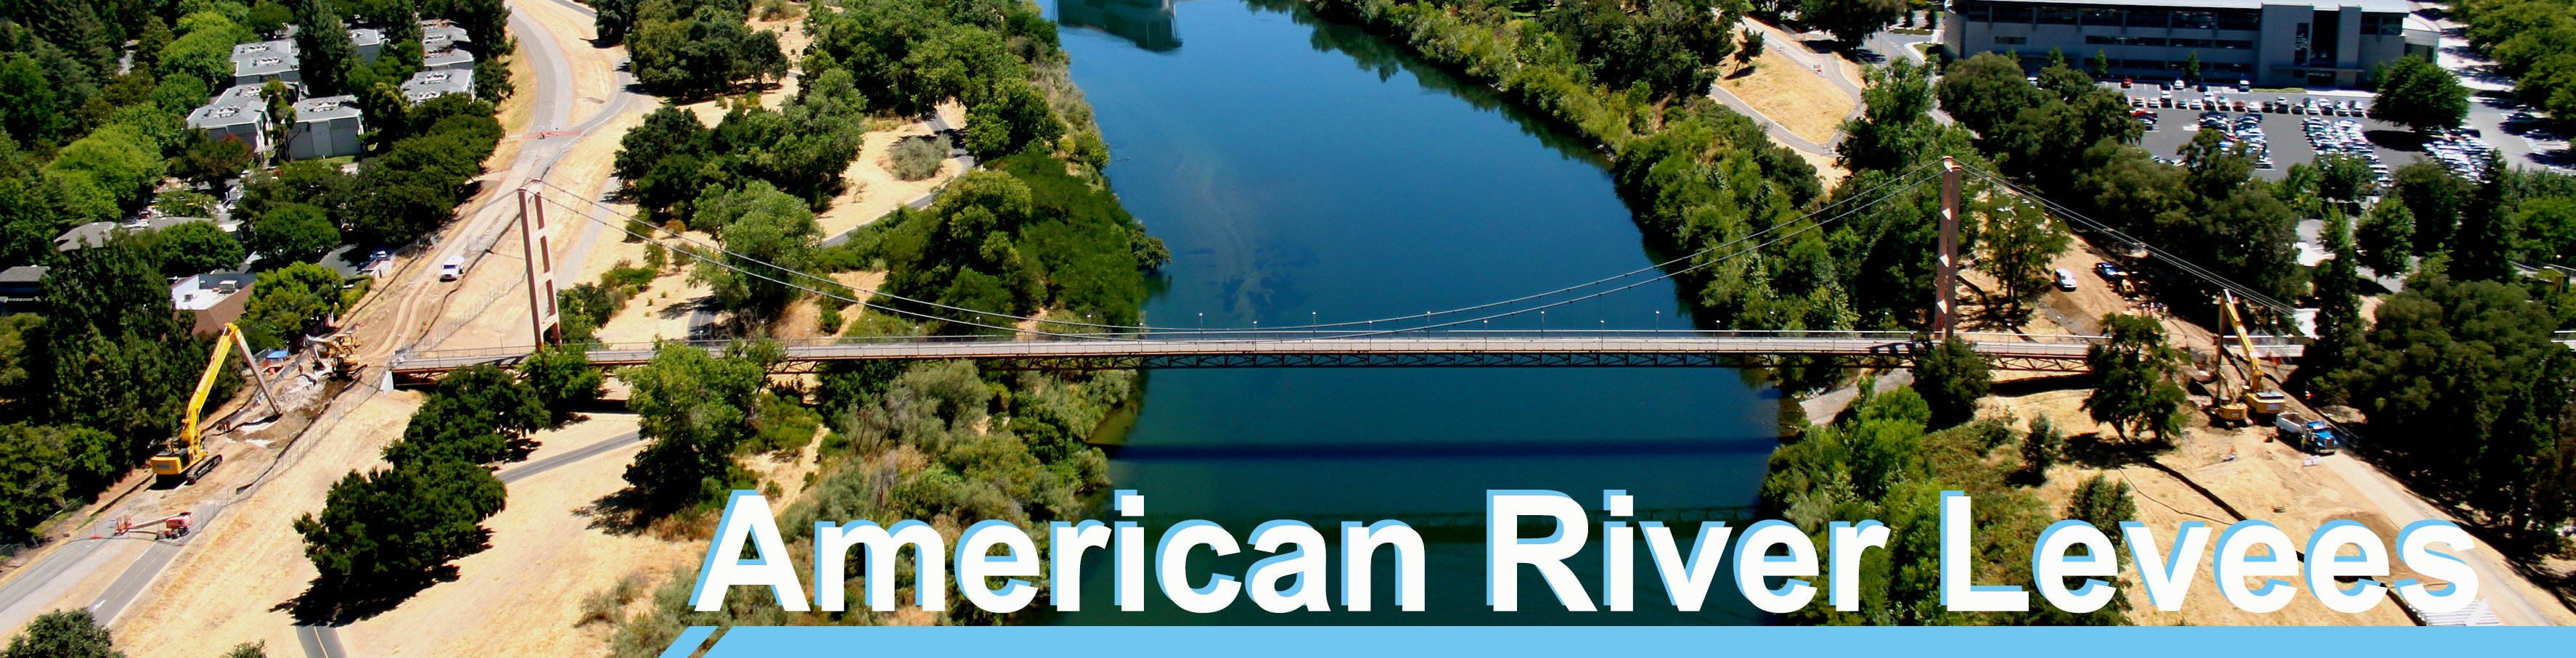 Banner - American River Levees